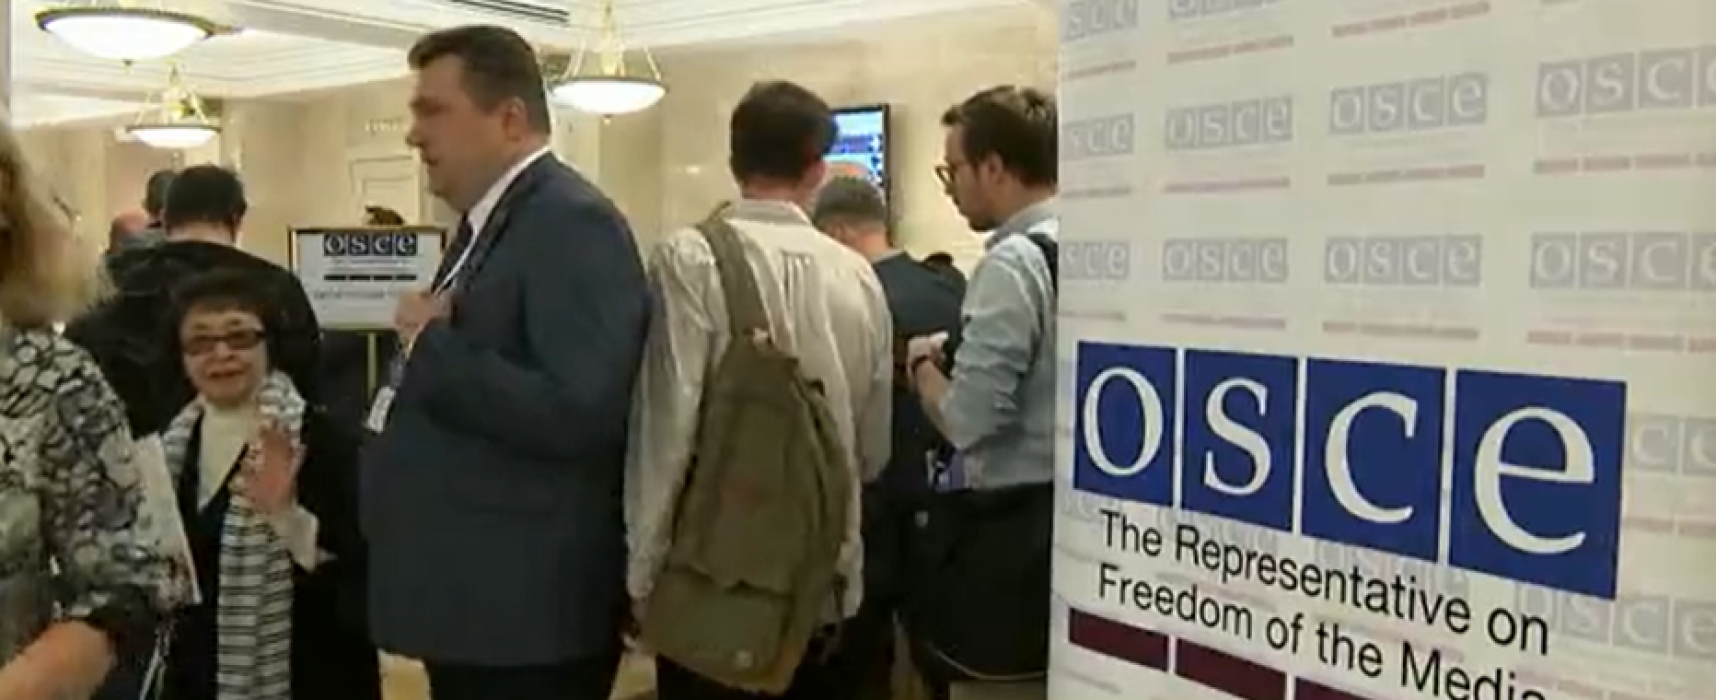 OSCE Media Rep collaborates with Russia on propaganda event in Moscow